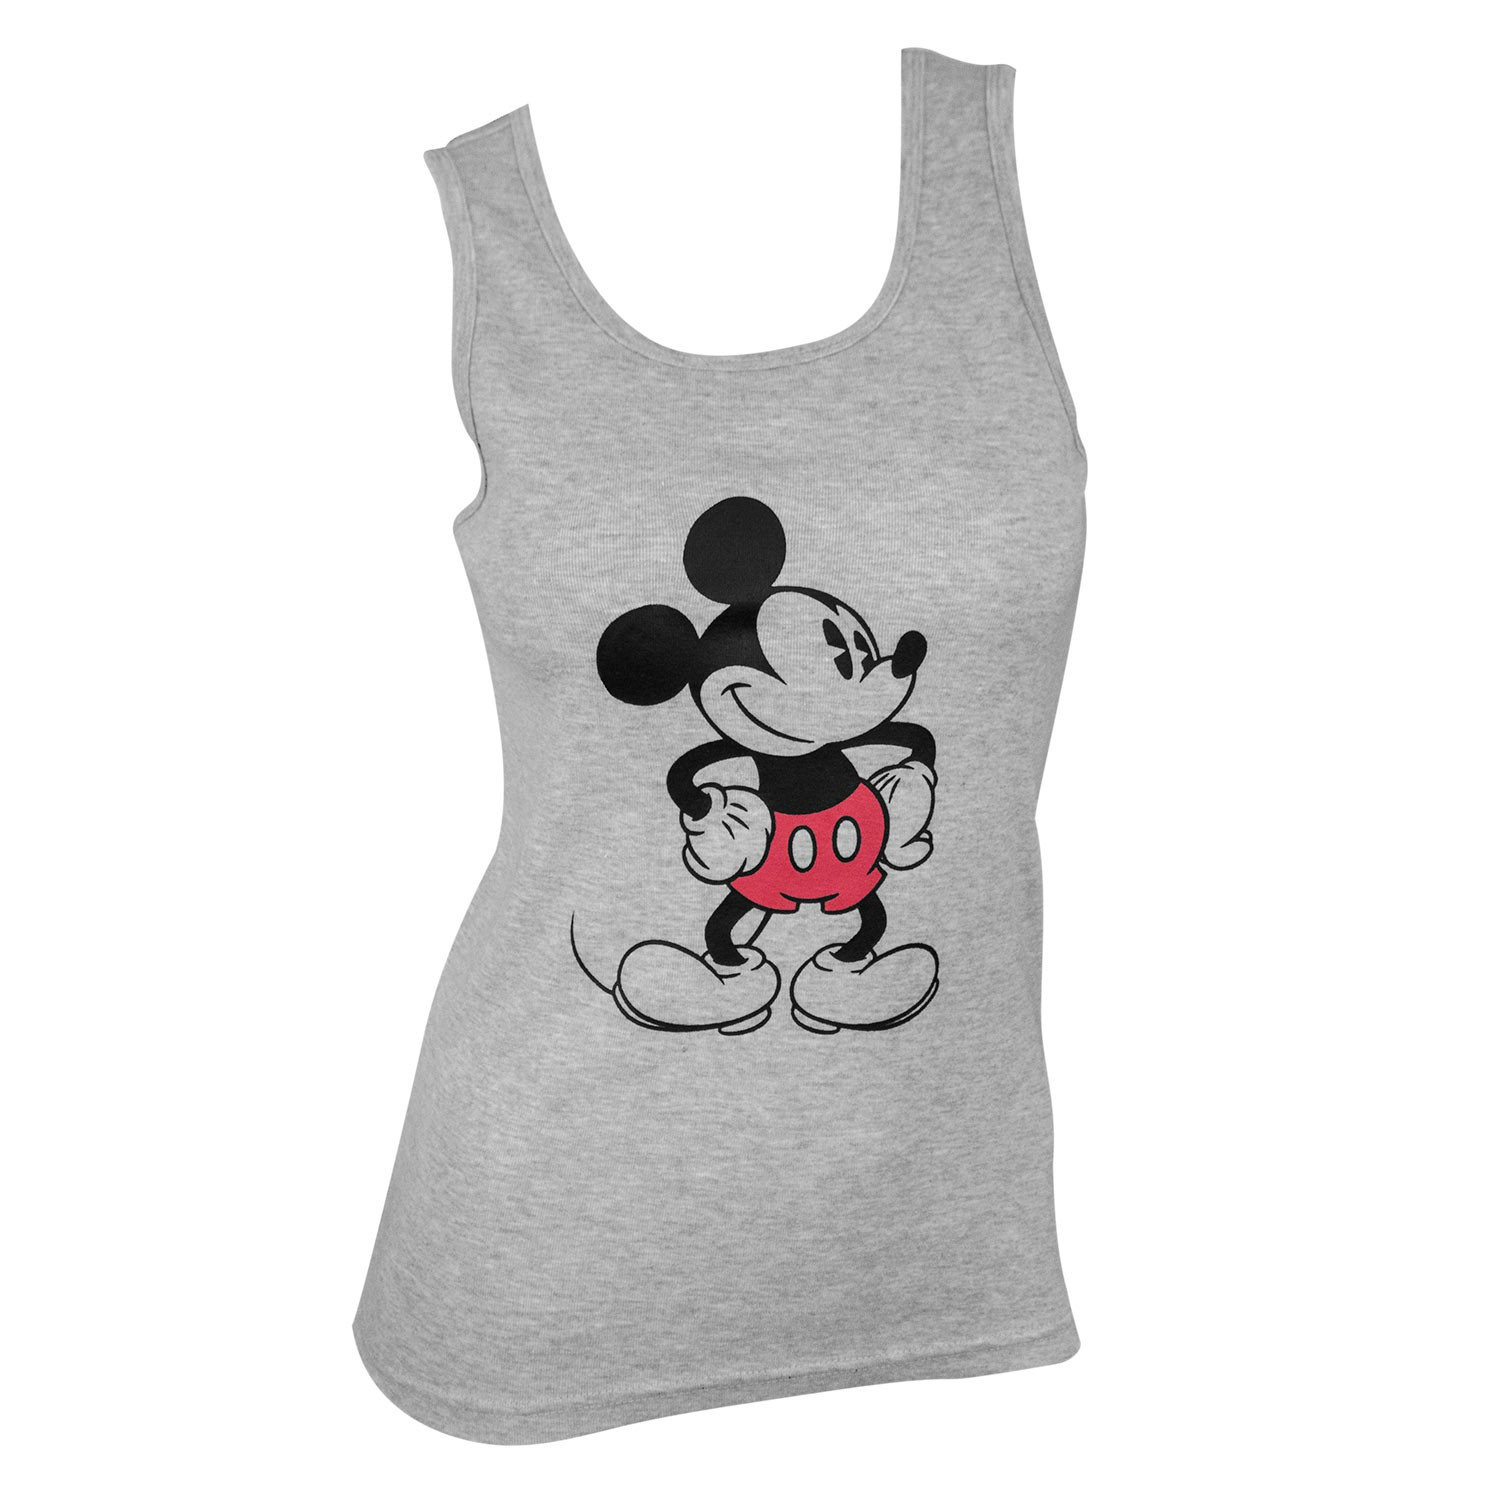 Mickey Mouse Women's Grey Tank Top